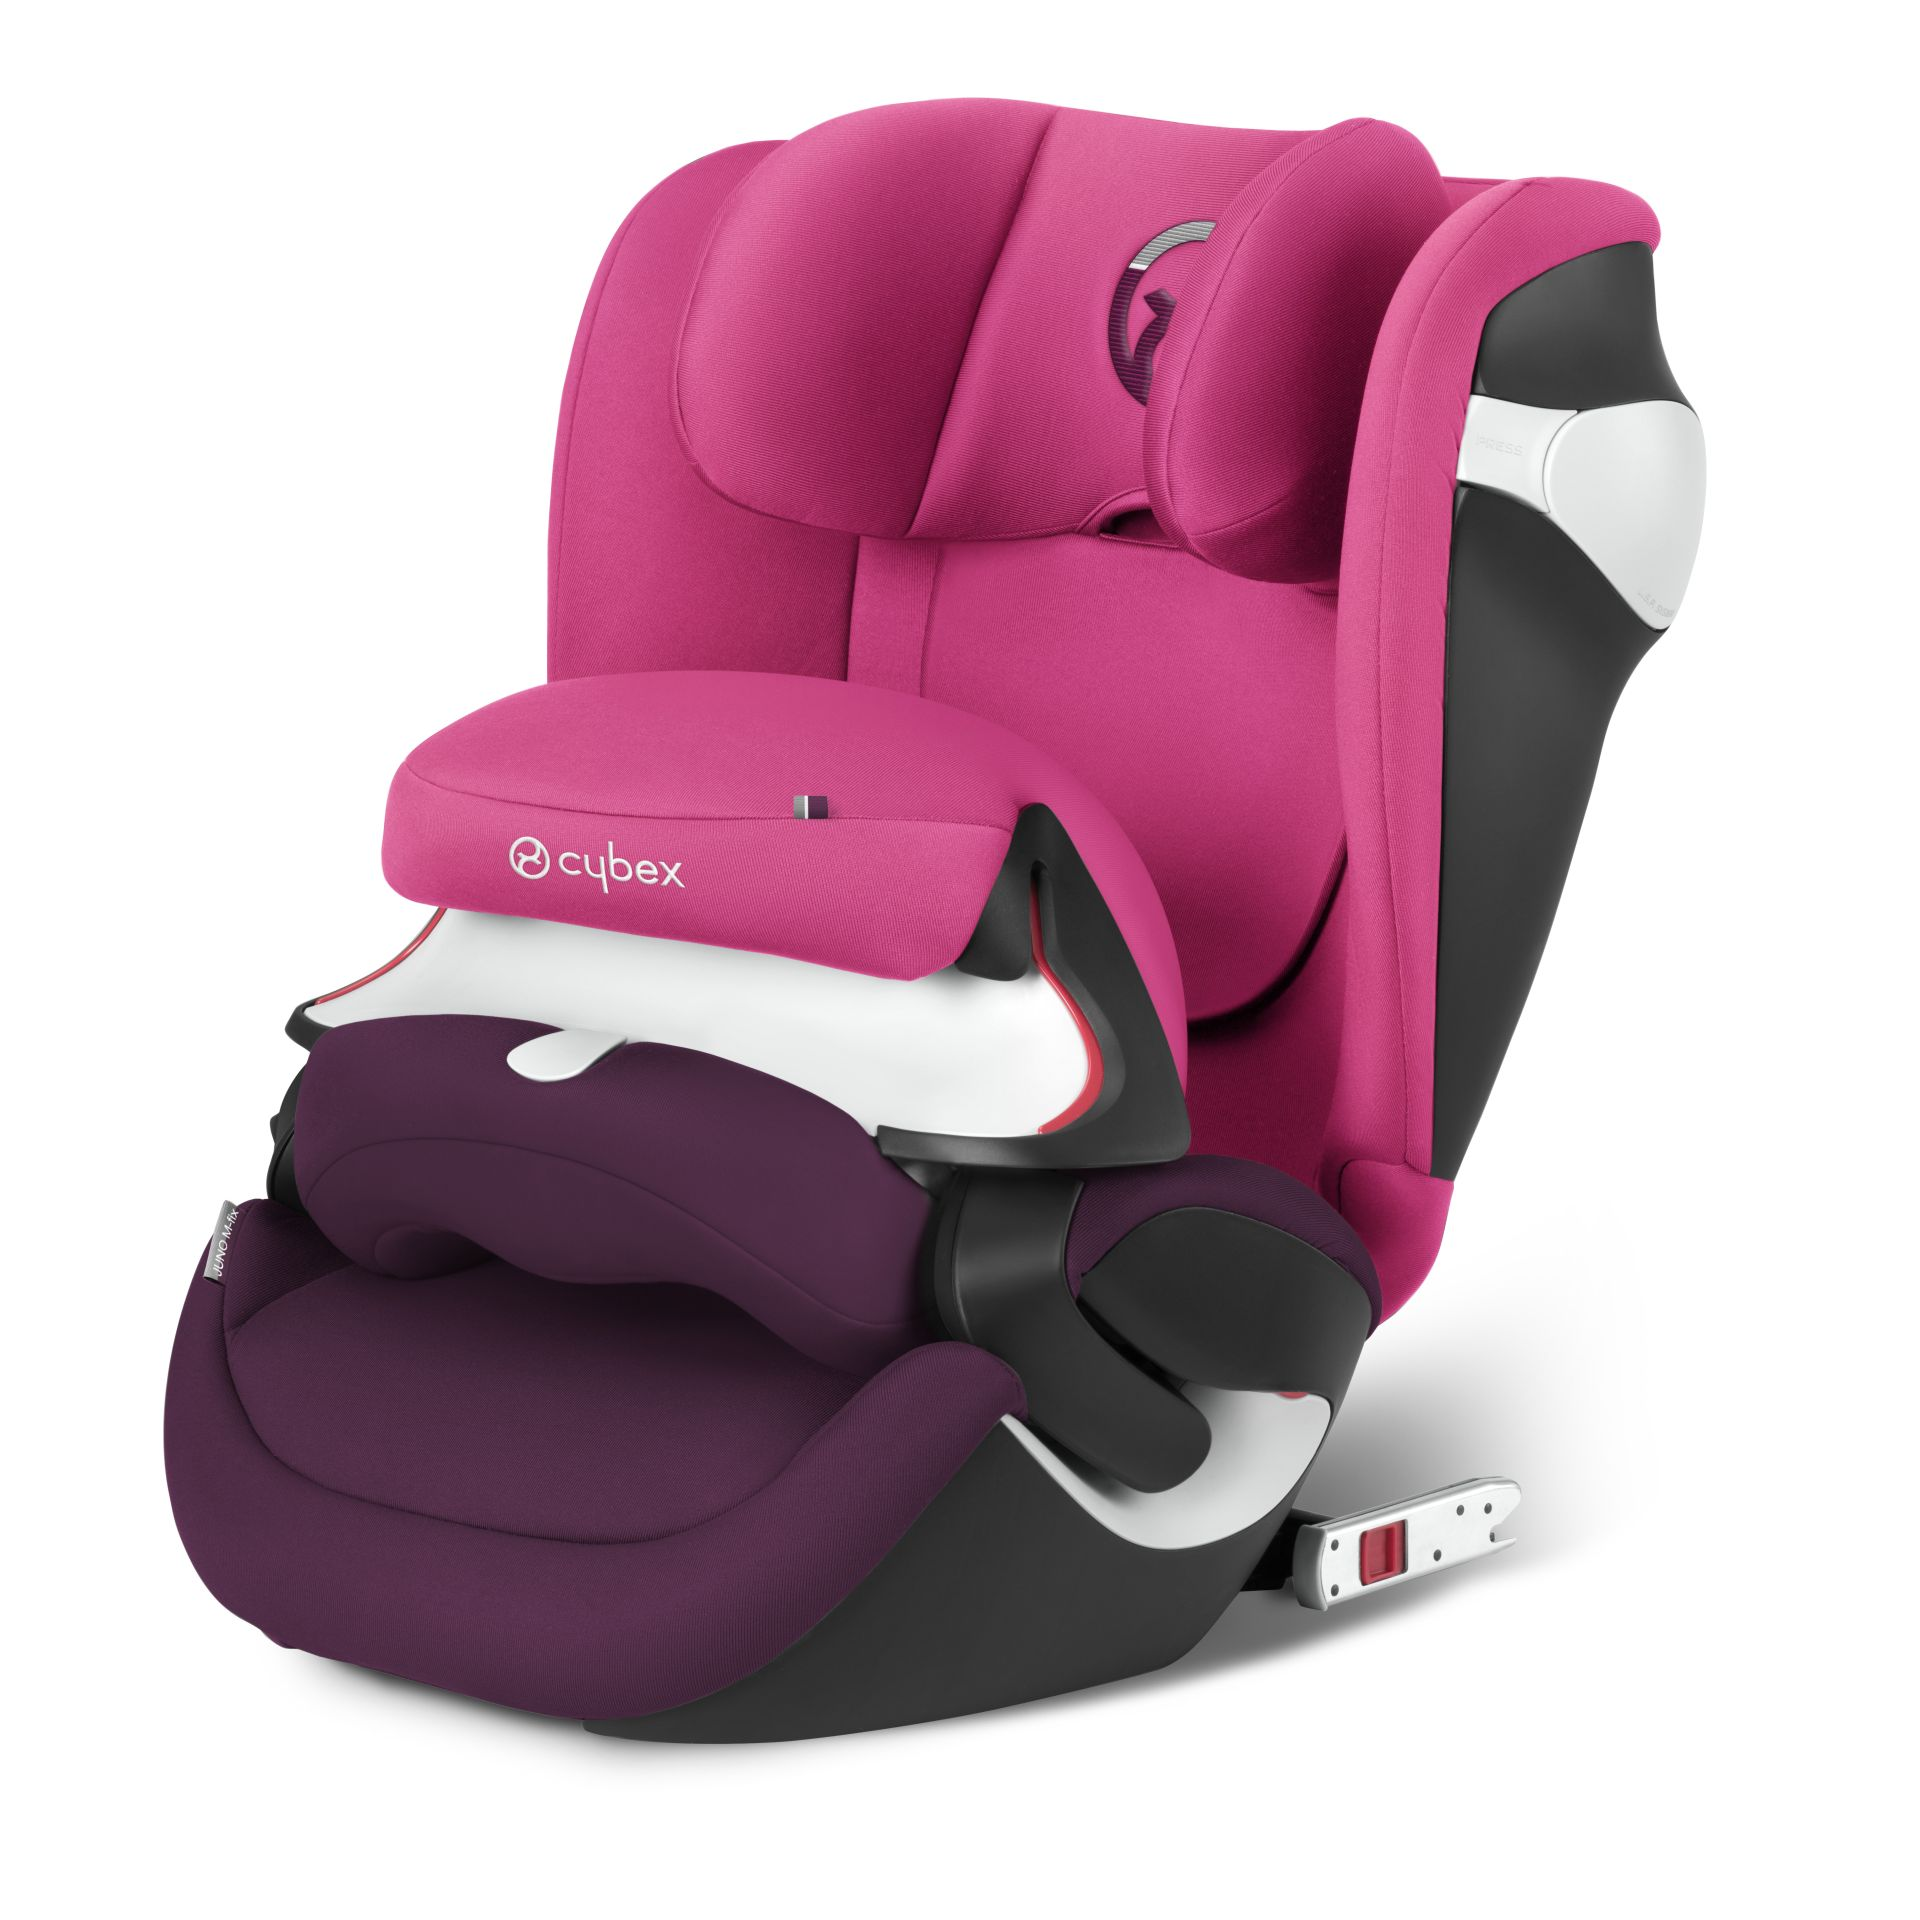 cybex car seat juno m fix 2017 mystic pink purple buy at kidsroom brand shops cybex. Black Bedroom Furniture Sets. Home Design Ideas